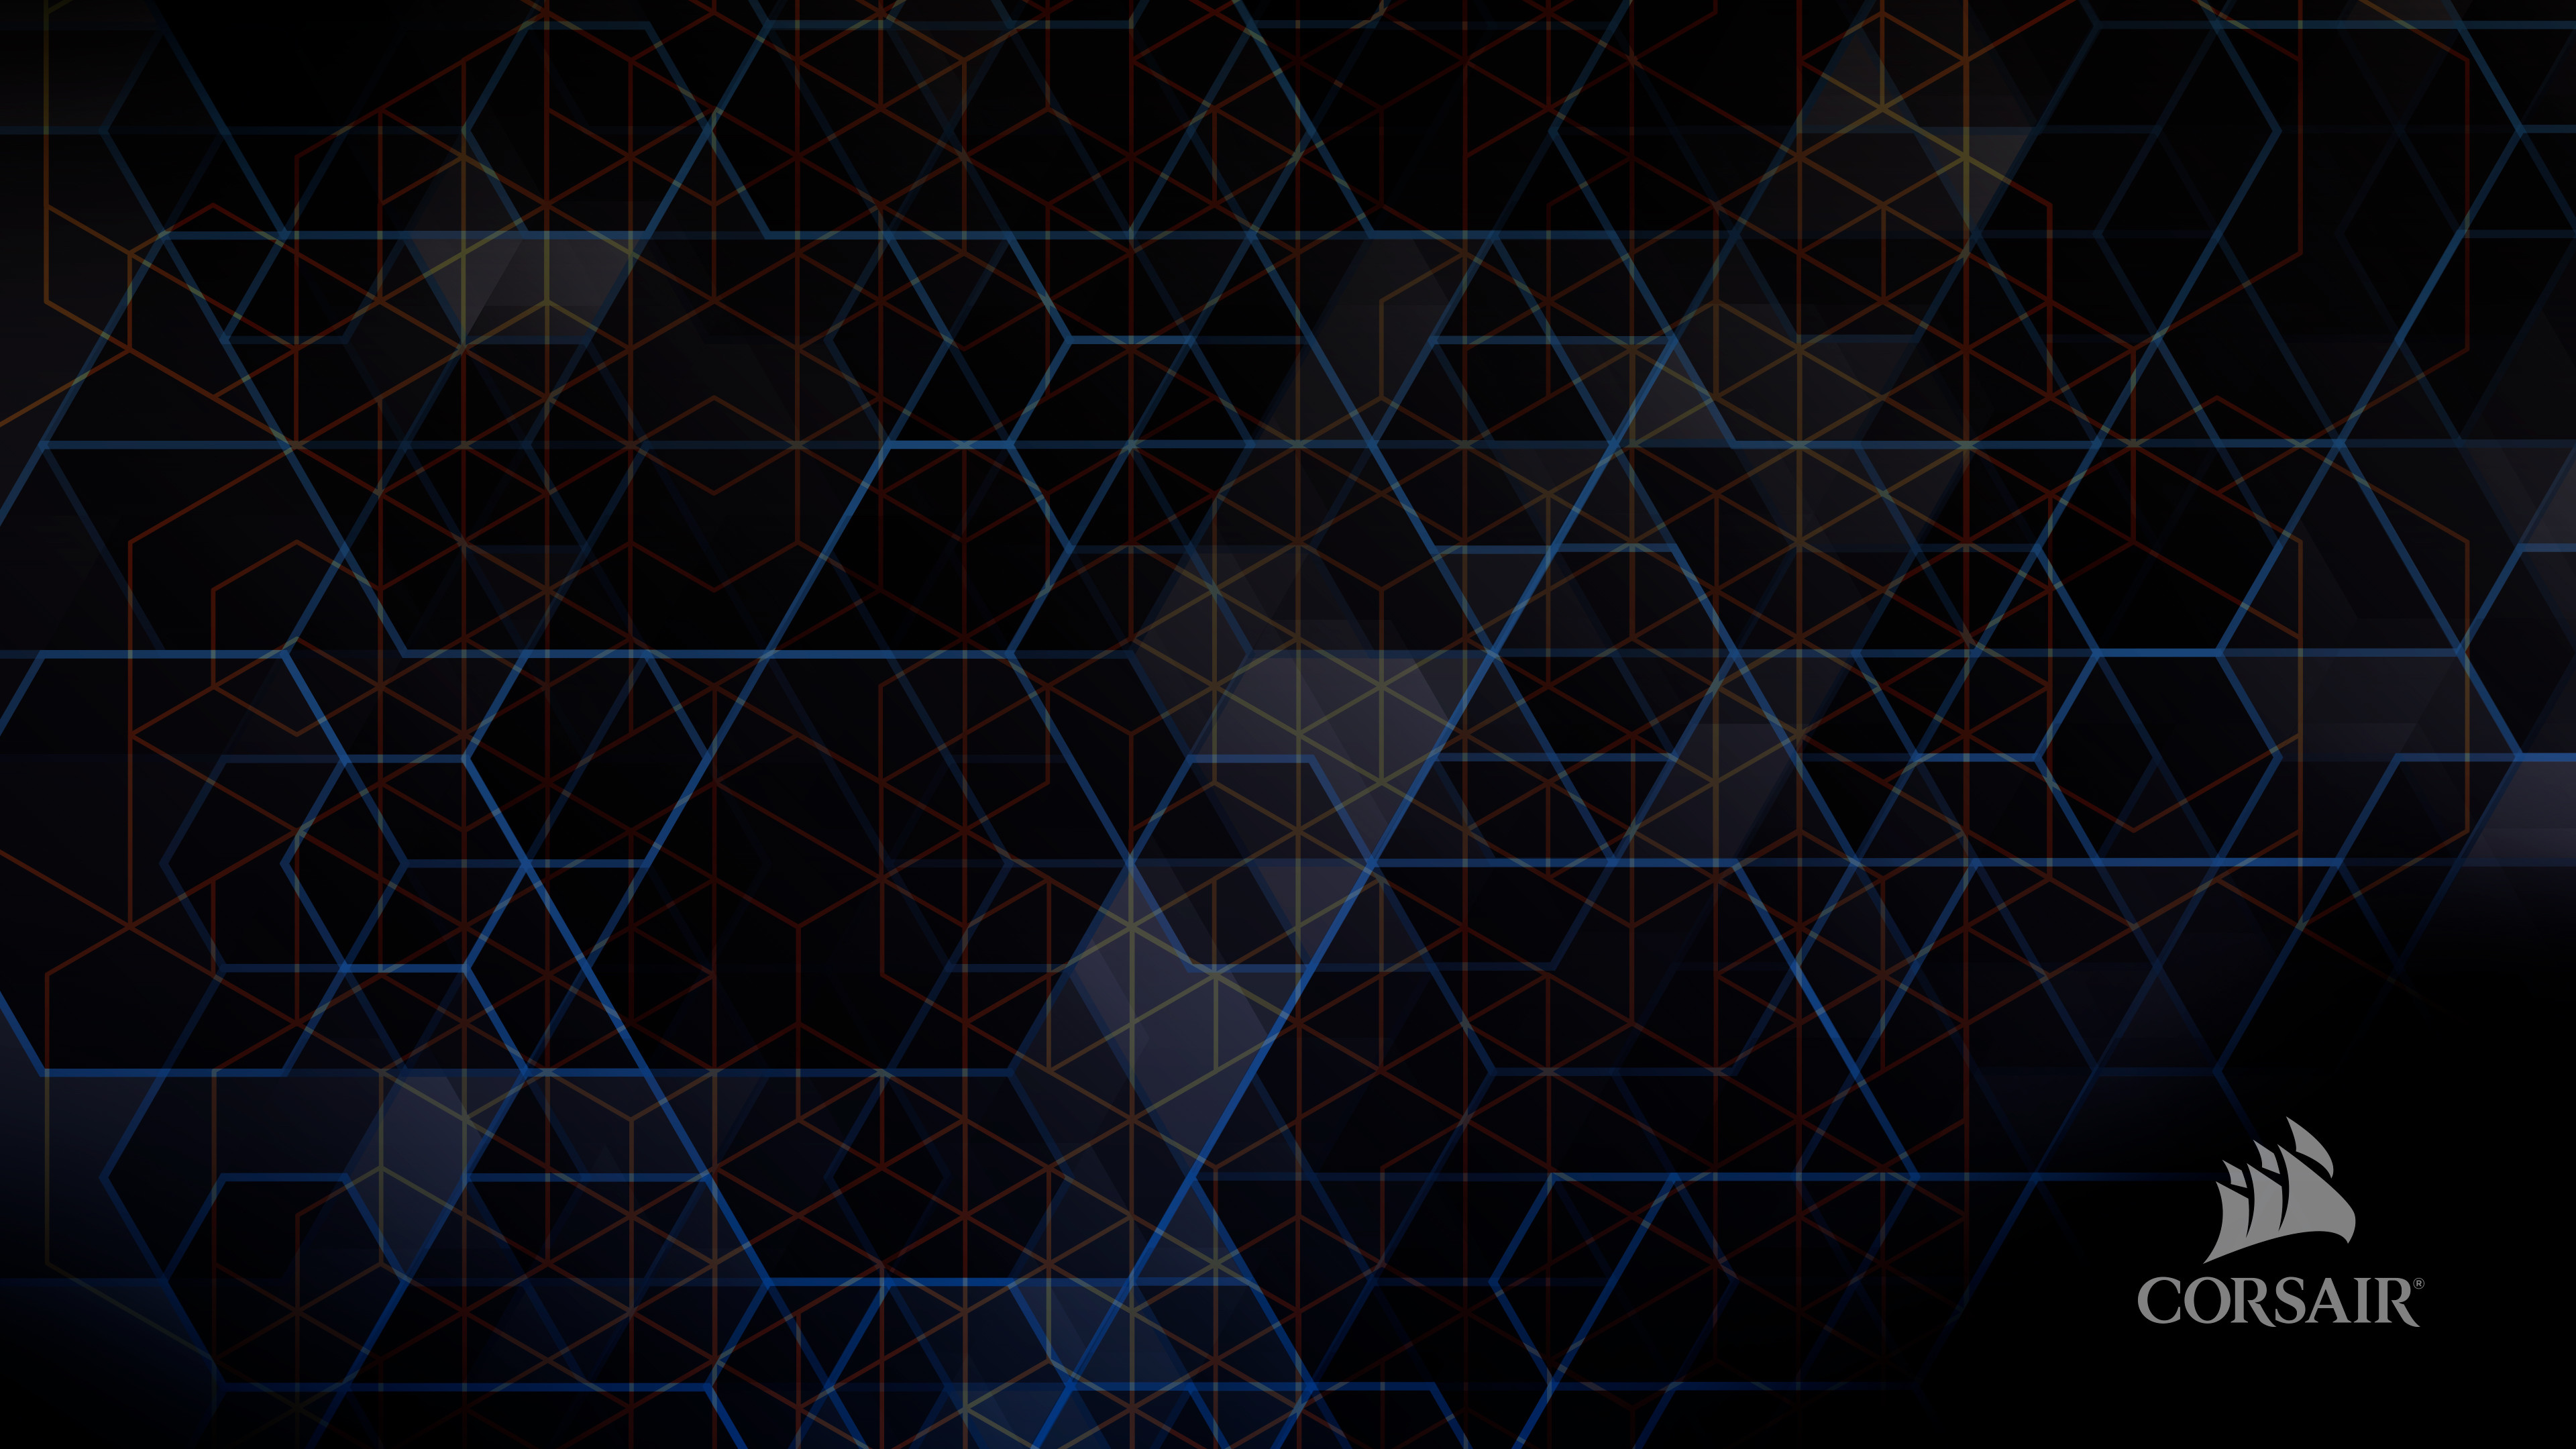 Hex grid wallpaper for Corsair wallpaper 4k